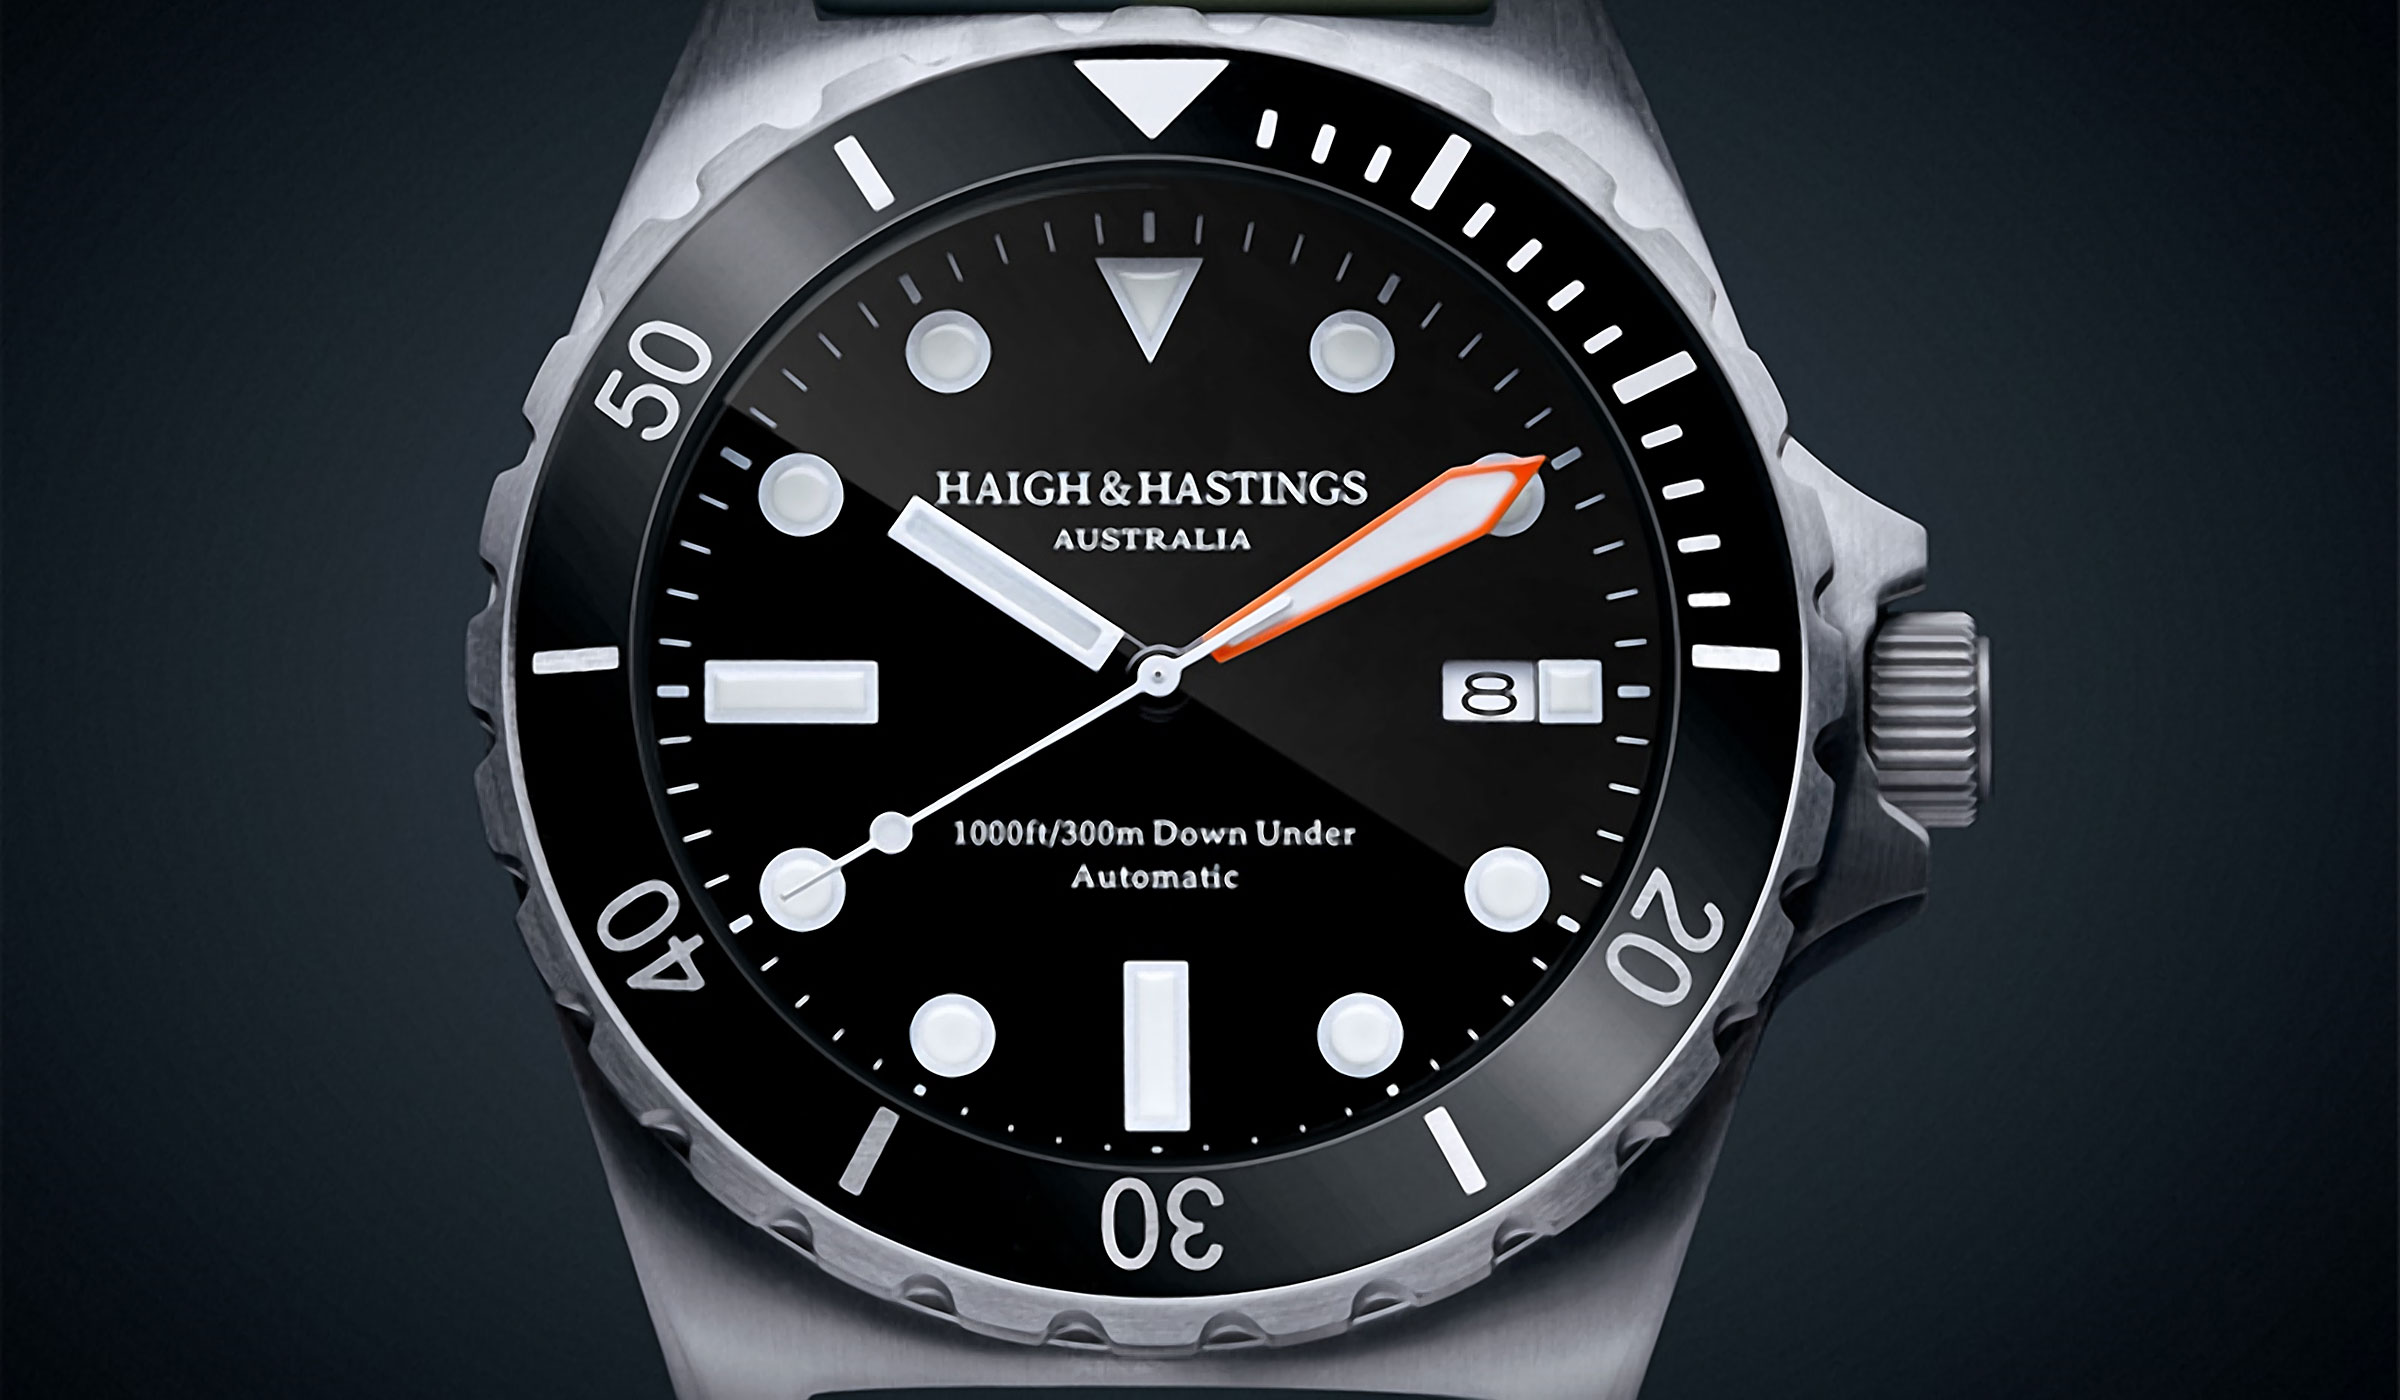 M2 DIVER BY HAIGH & HASTINGS